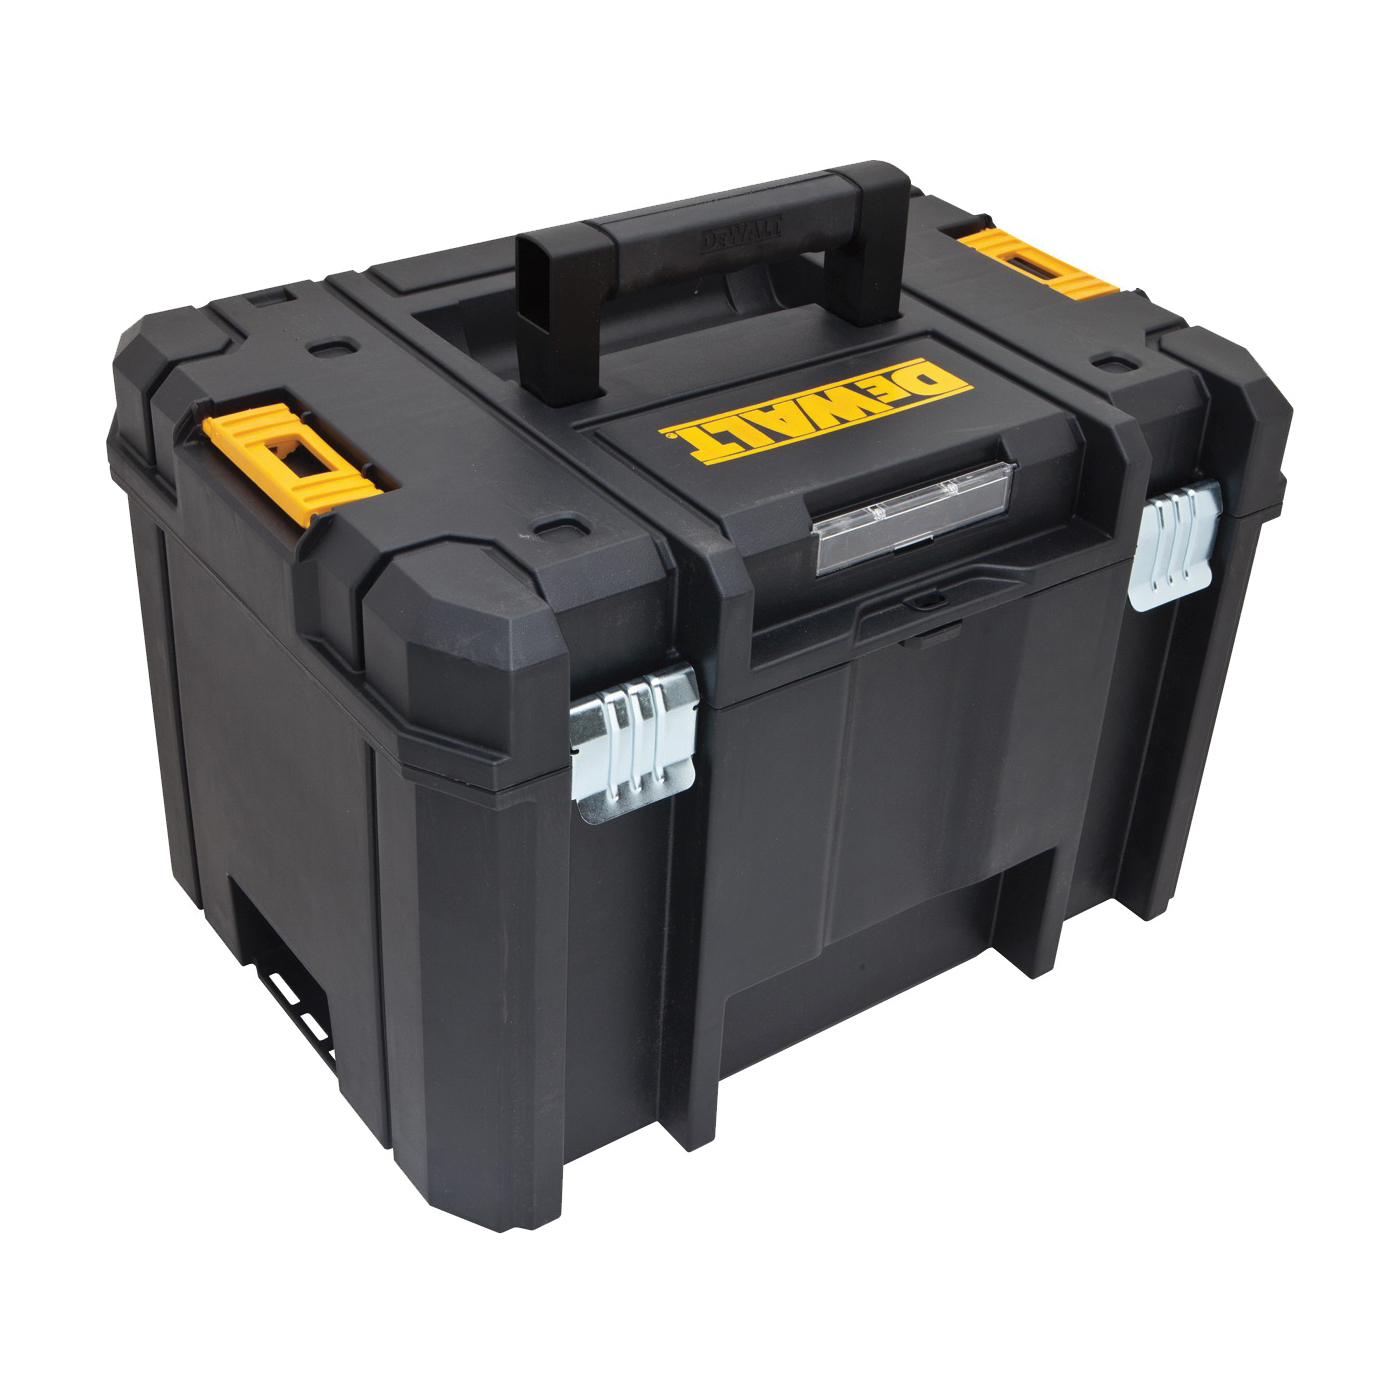 Picture of DeWALT TSTAK VI DWST17806 Deep Box, 66 lb, Plastic, Black